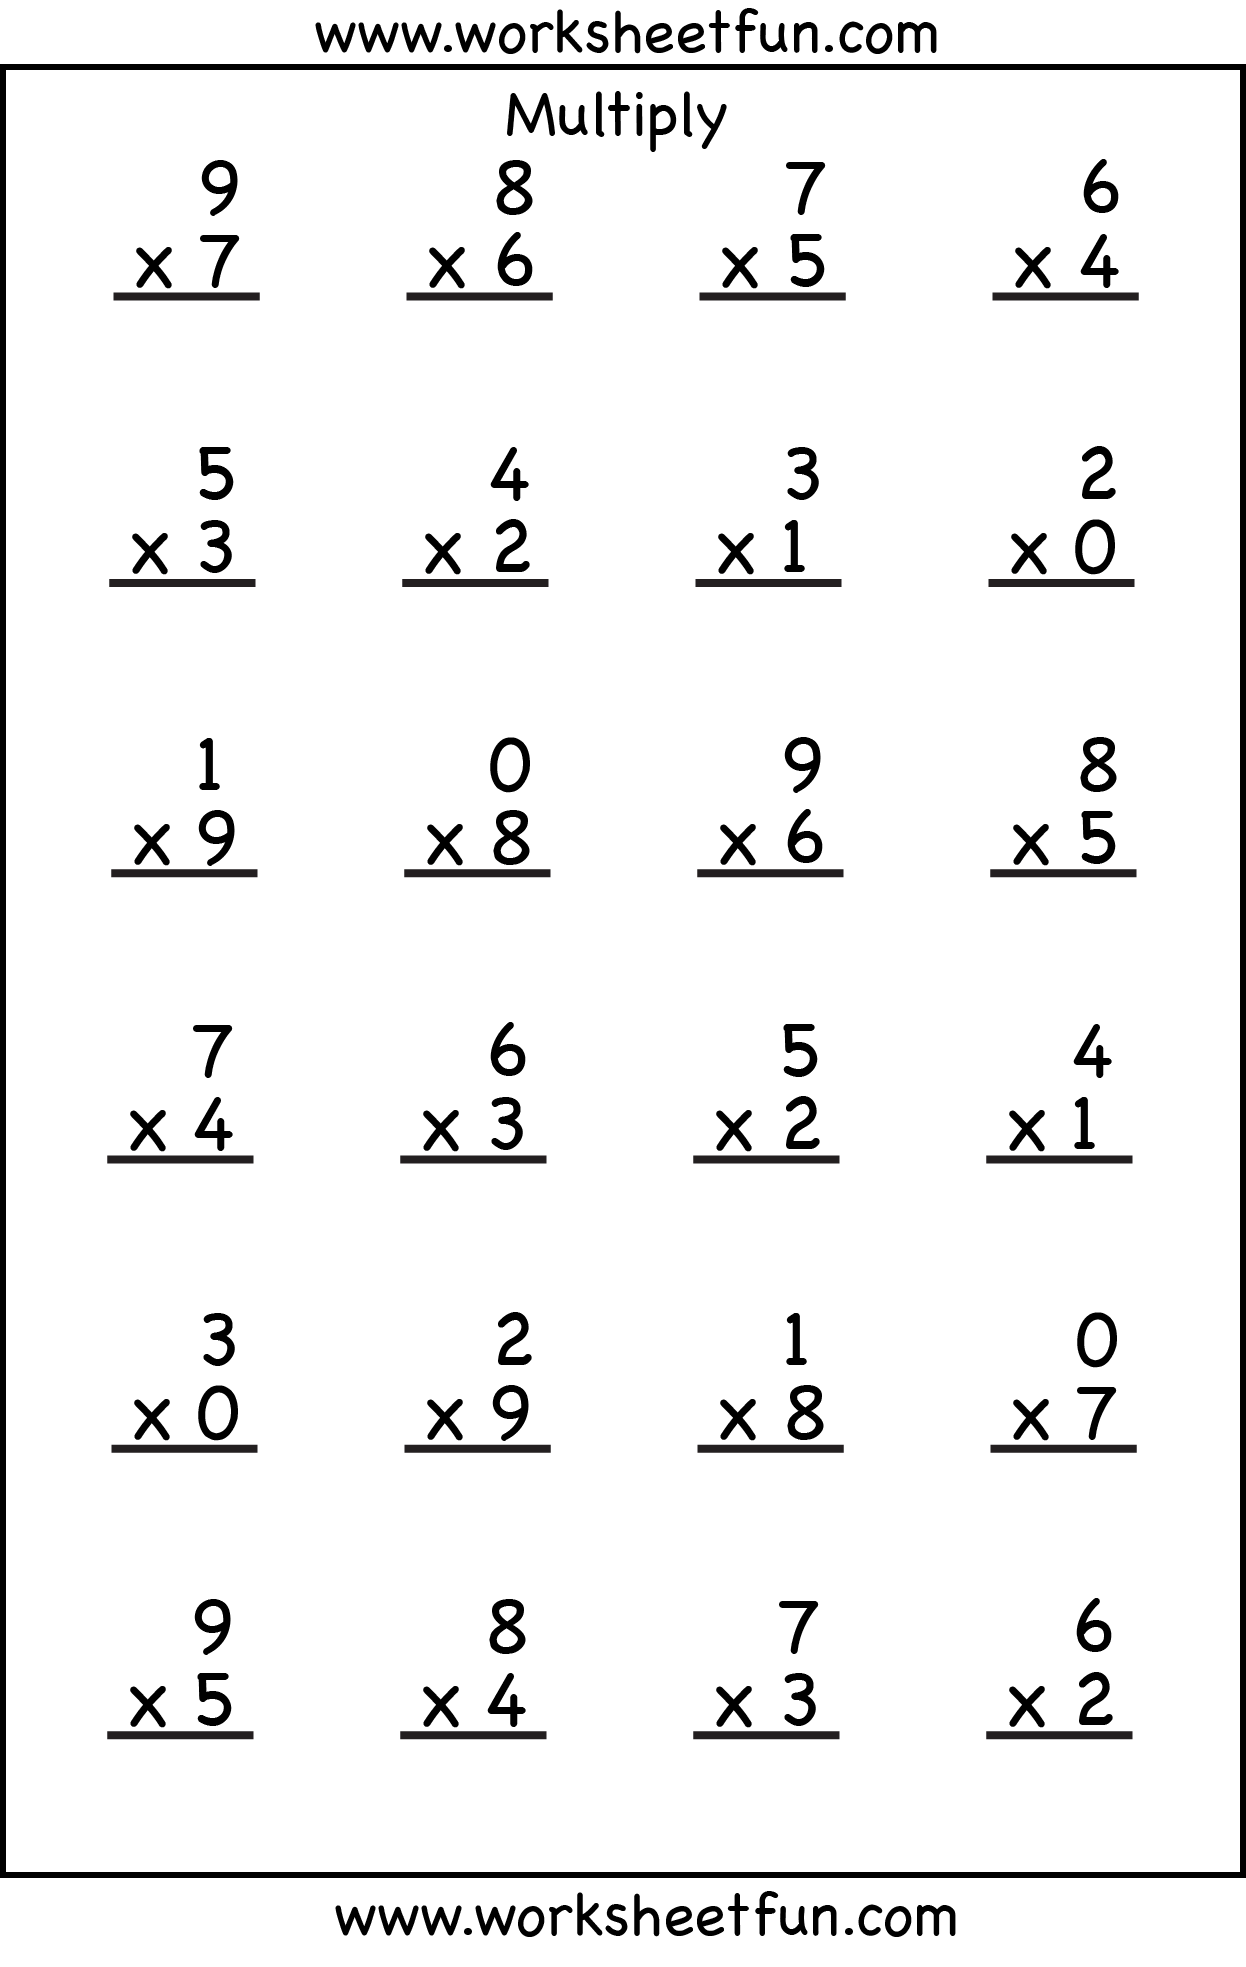 Fun Multiplication And Division Worksheets Fact Families – 4 by 1 Multiplication Worksheets